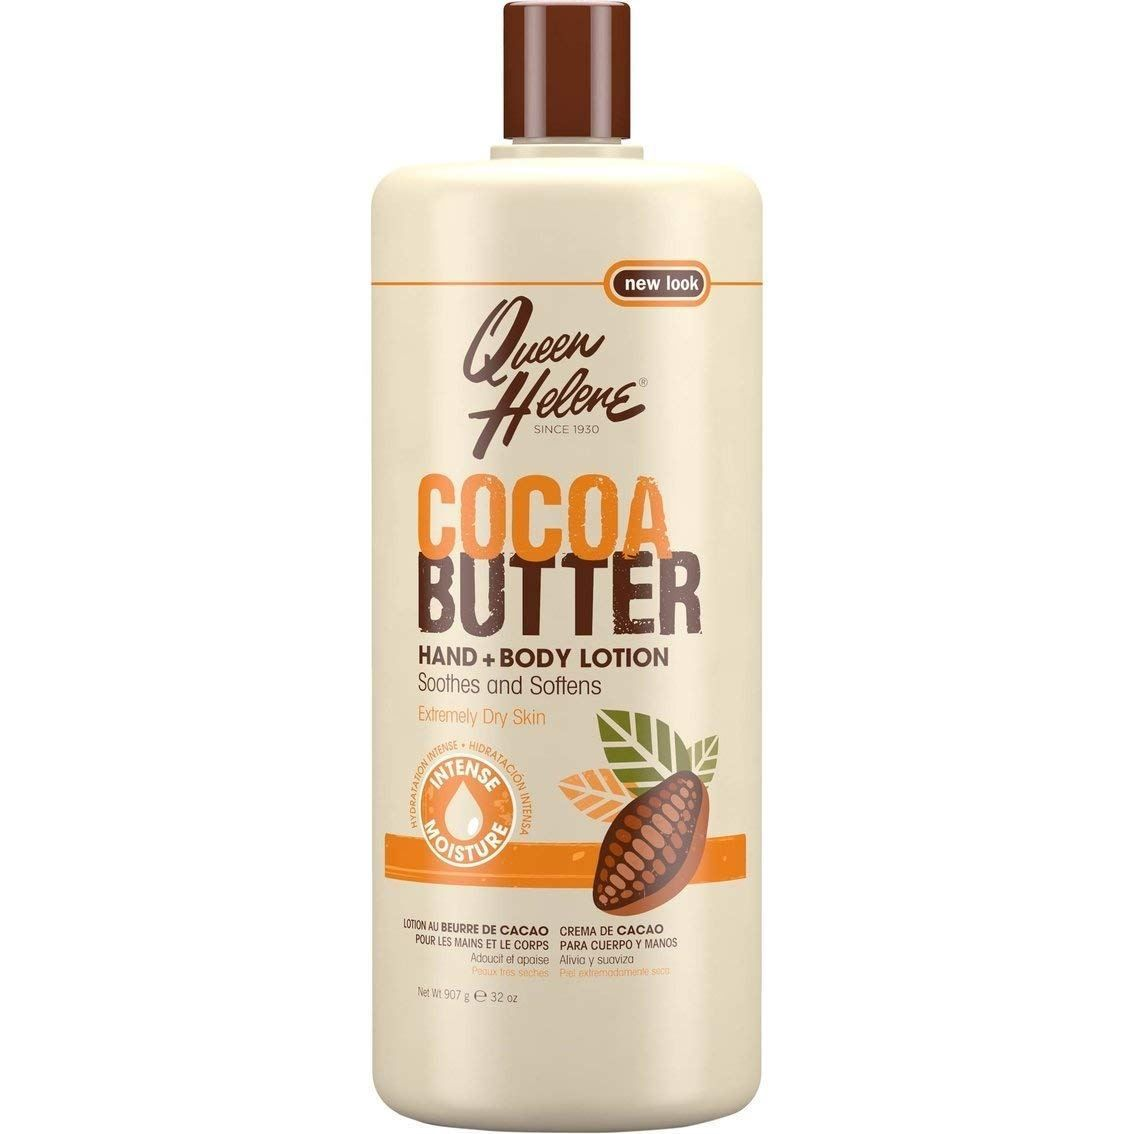 Cocoa Butter Hand + Body Lotion